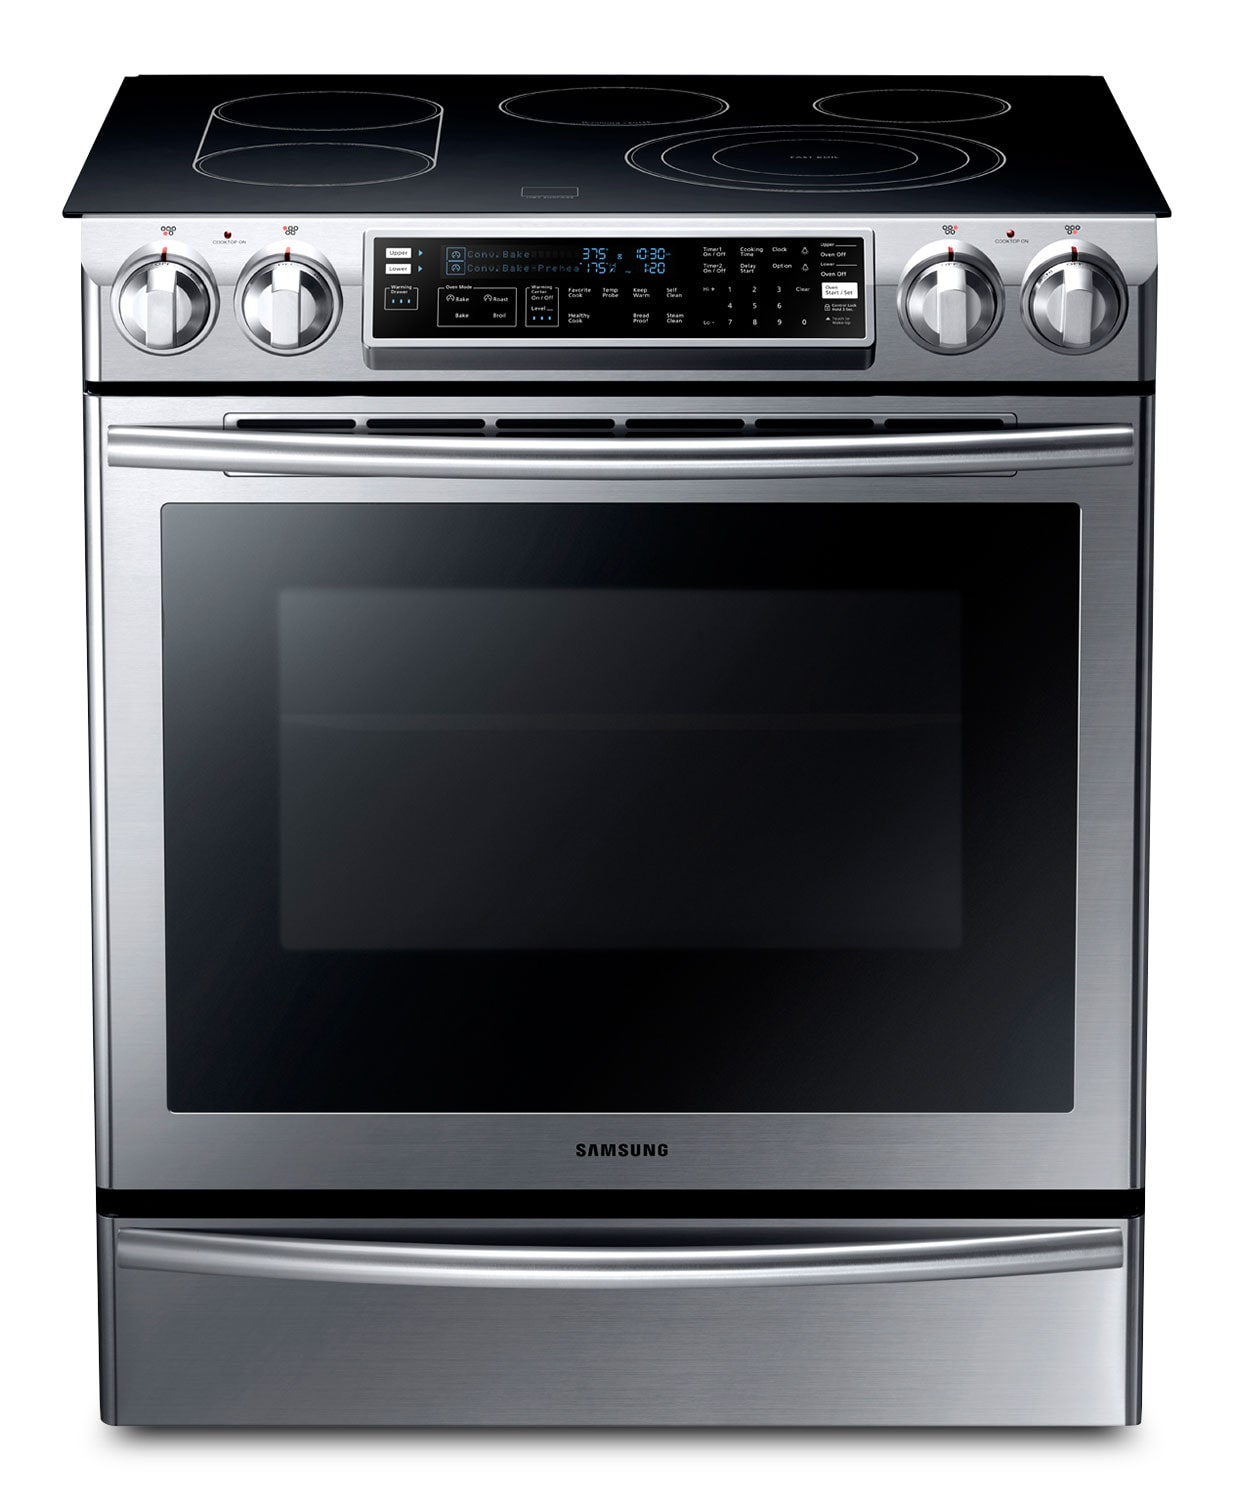 Cooking Products - Samsung Stainless Steel Slide-In Electric Convection Range (5.8 Cu. Ft.) - NE58F9710WS